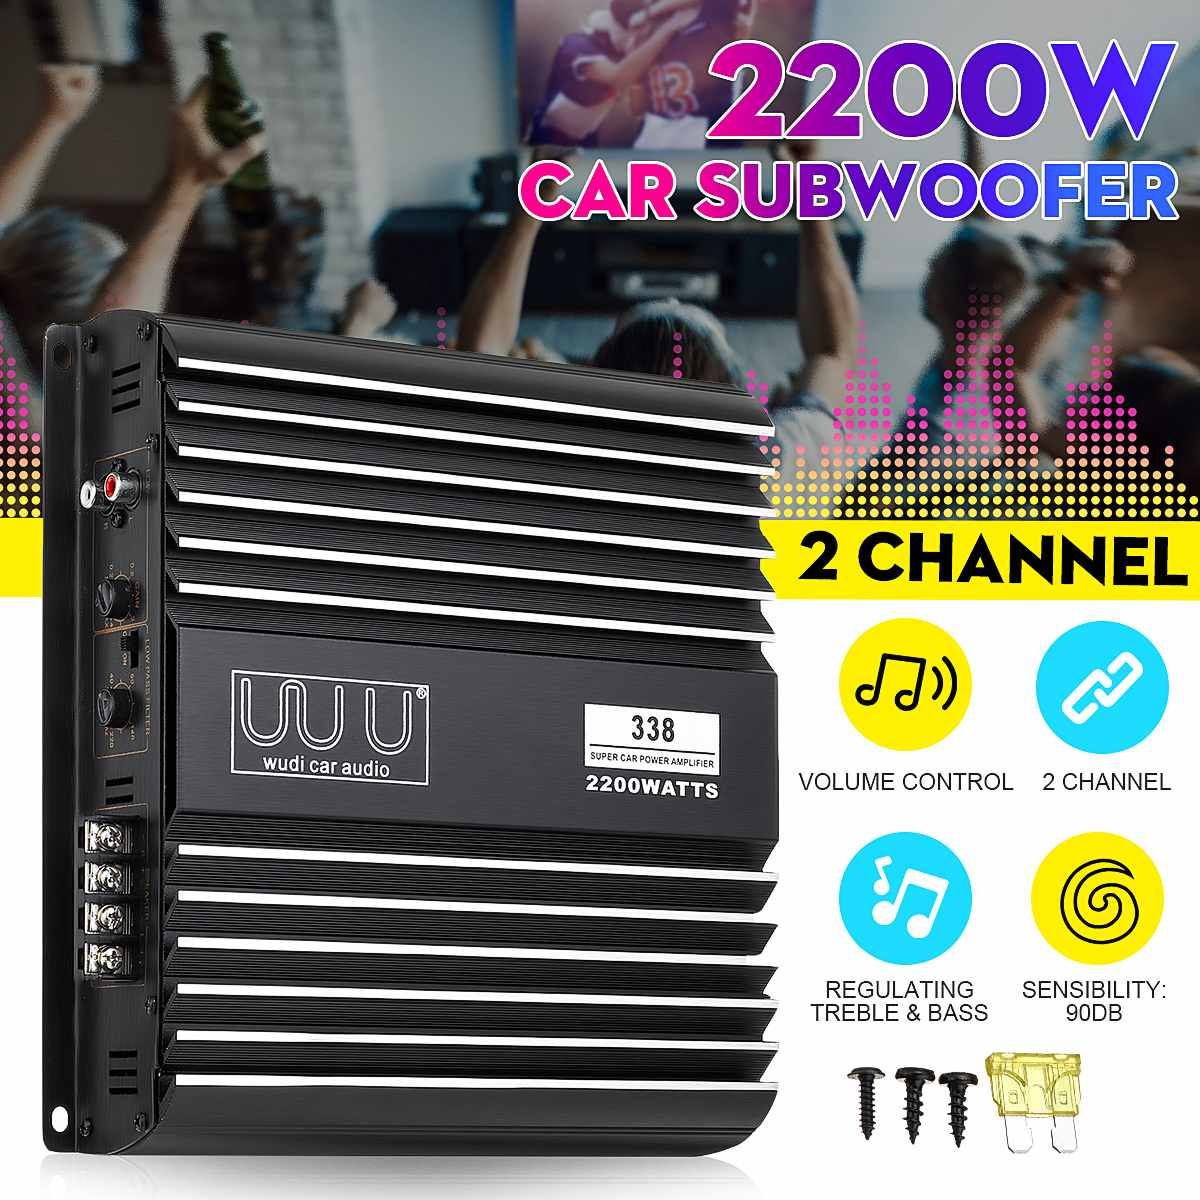 2 Channel 2200W Car Audio Amplifier Vehicle Car Amplifiers Speaker Stereo Audio Super Bass Subwoofer Prower Auto Amp